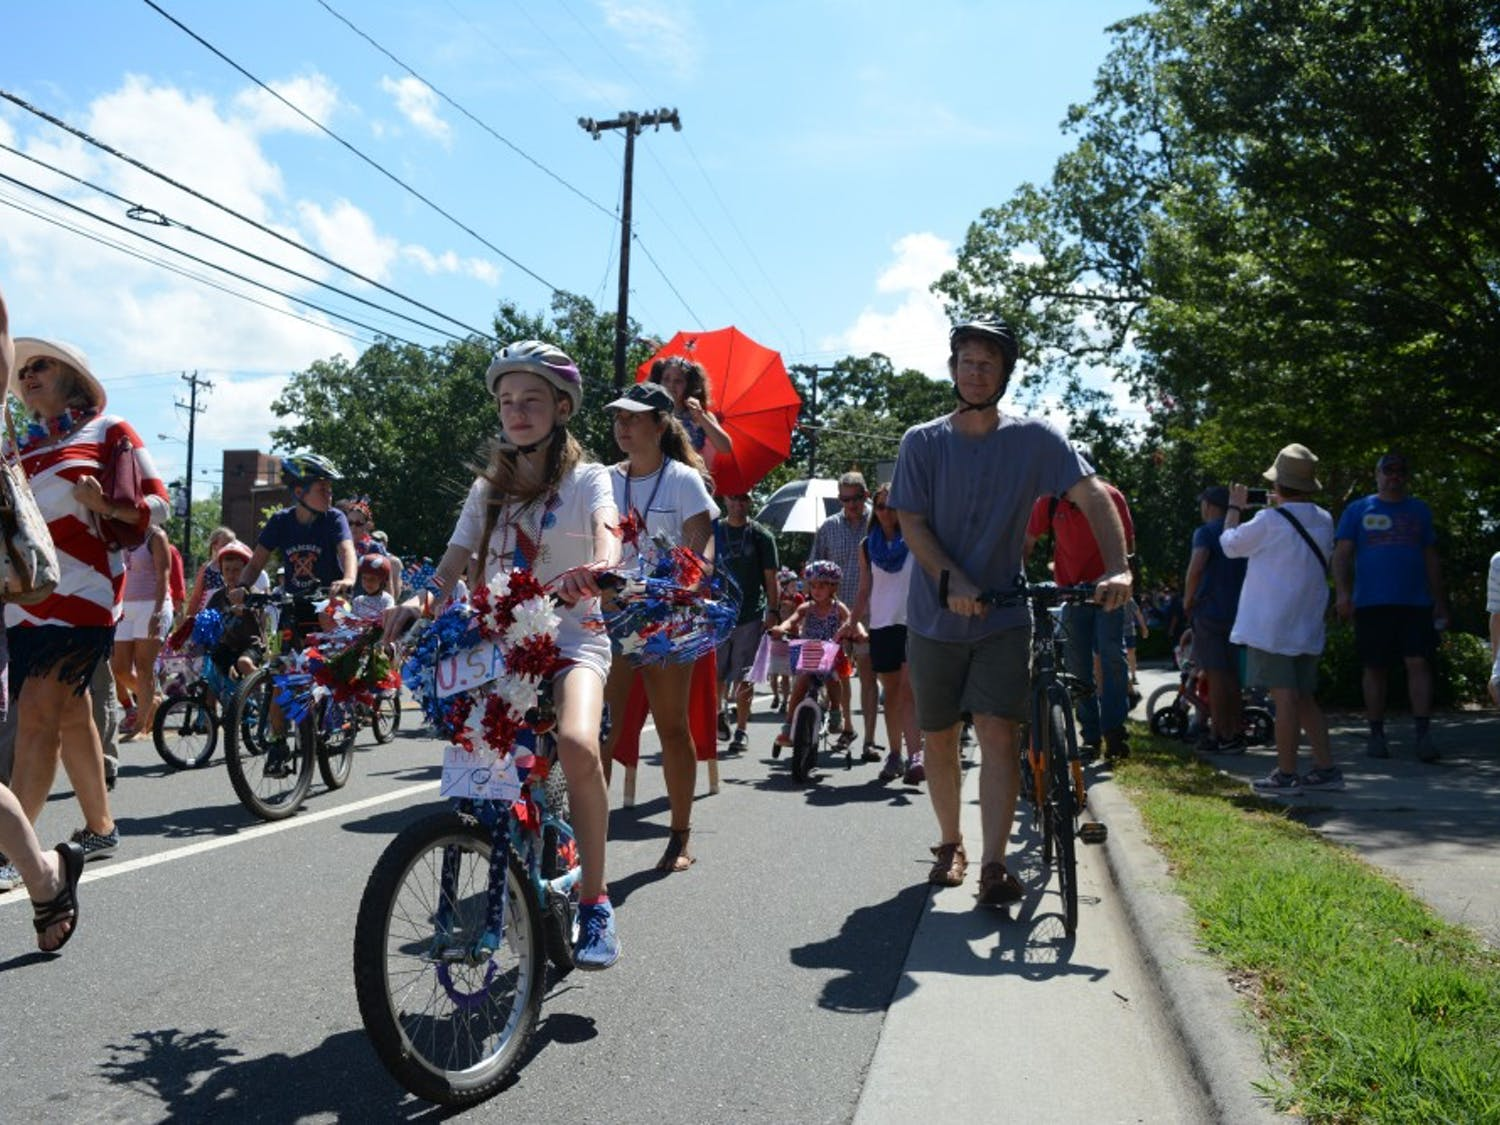 Rose Kohout from Carrboro rides her first place-winning decorated bicycle down Weaver Street during Carrboro's Fourth of July Parade.